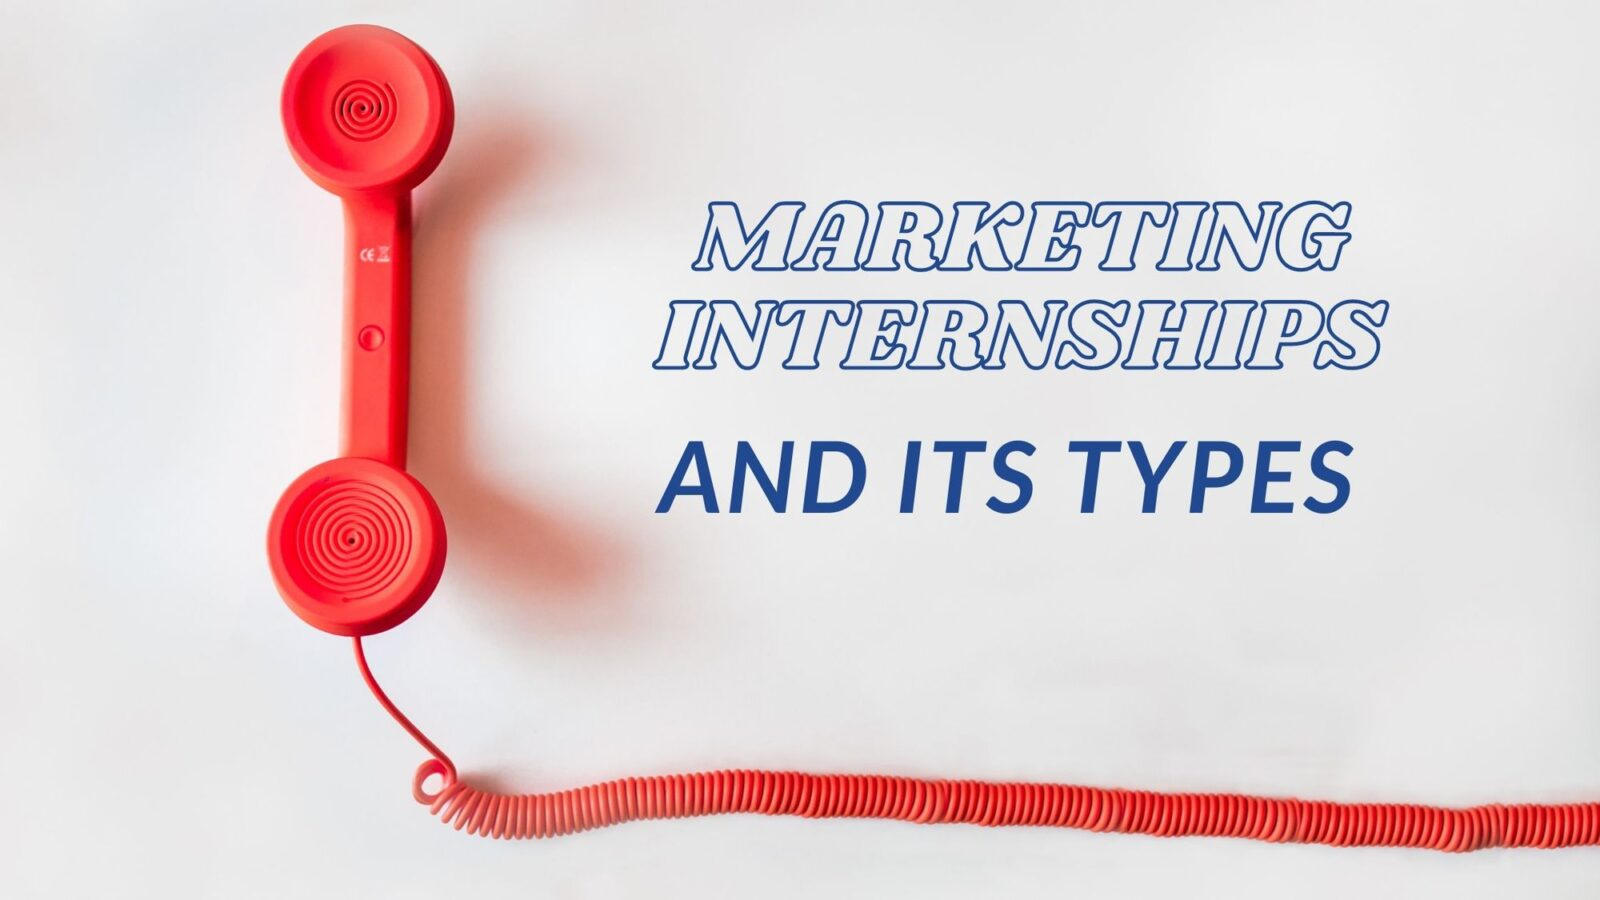 Marketing Internships and its types